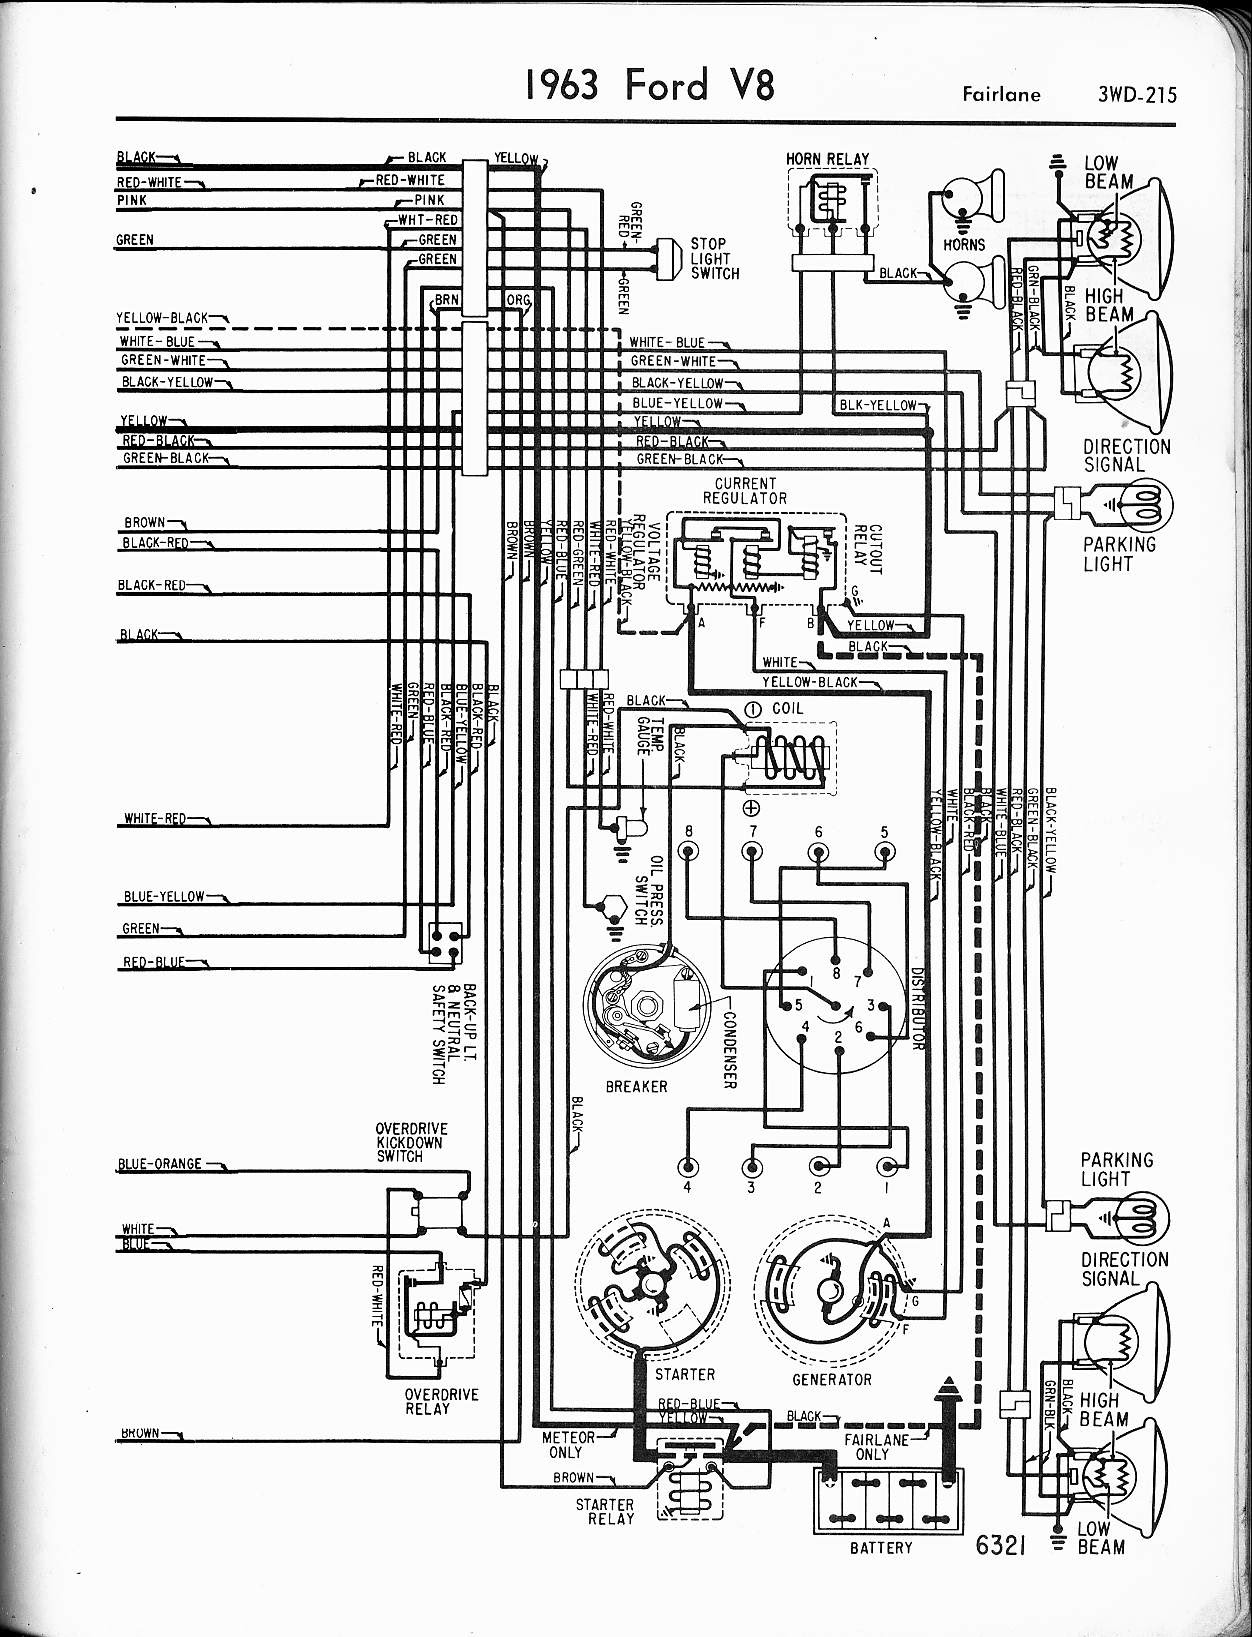 62 Comet Wiring Diagram FULL HD Version Wiring Diagram - NASSI-SHNEIDERMAN- DIAGRAM.EMBALLAGES-SOUS-VIDE.FREMBALLAGES-SOUS-VIDE.FR